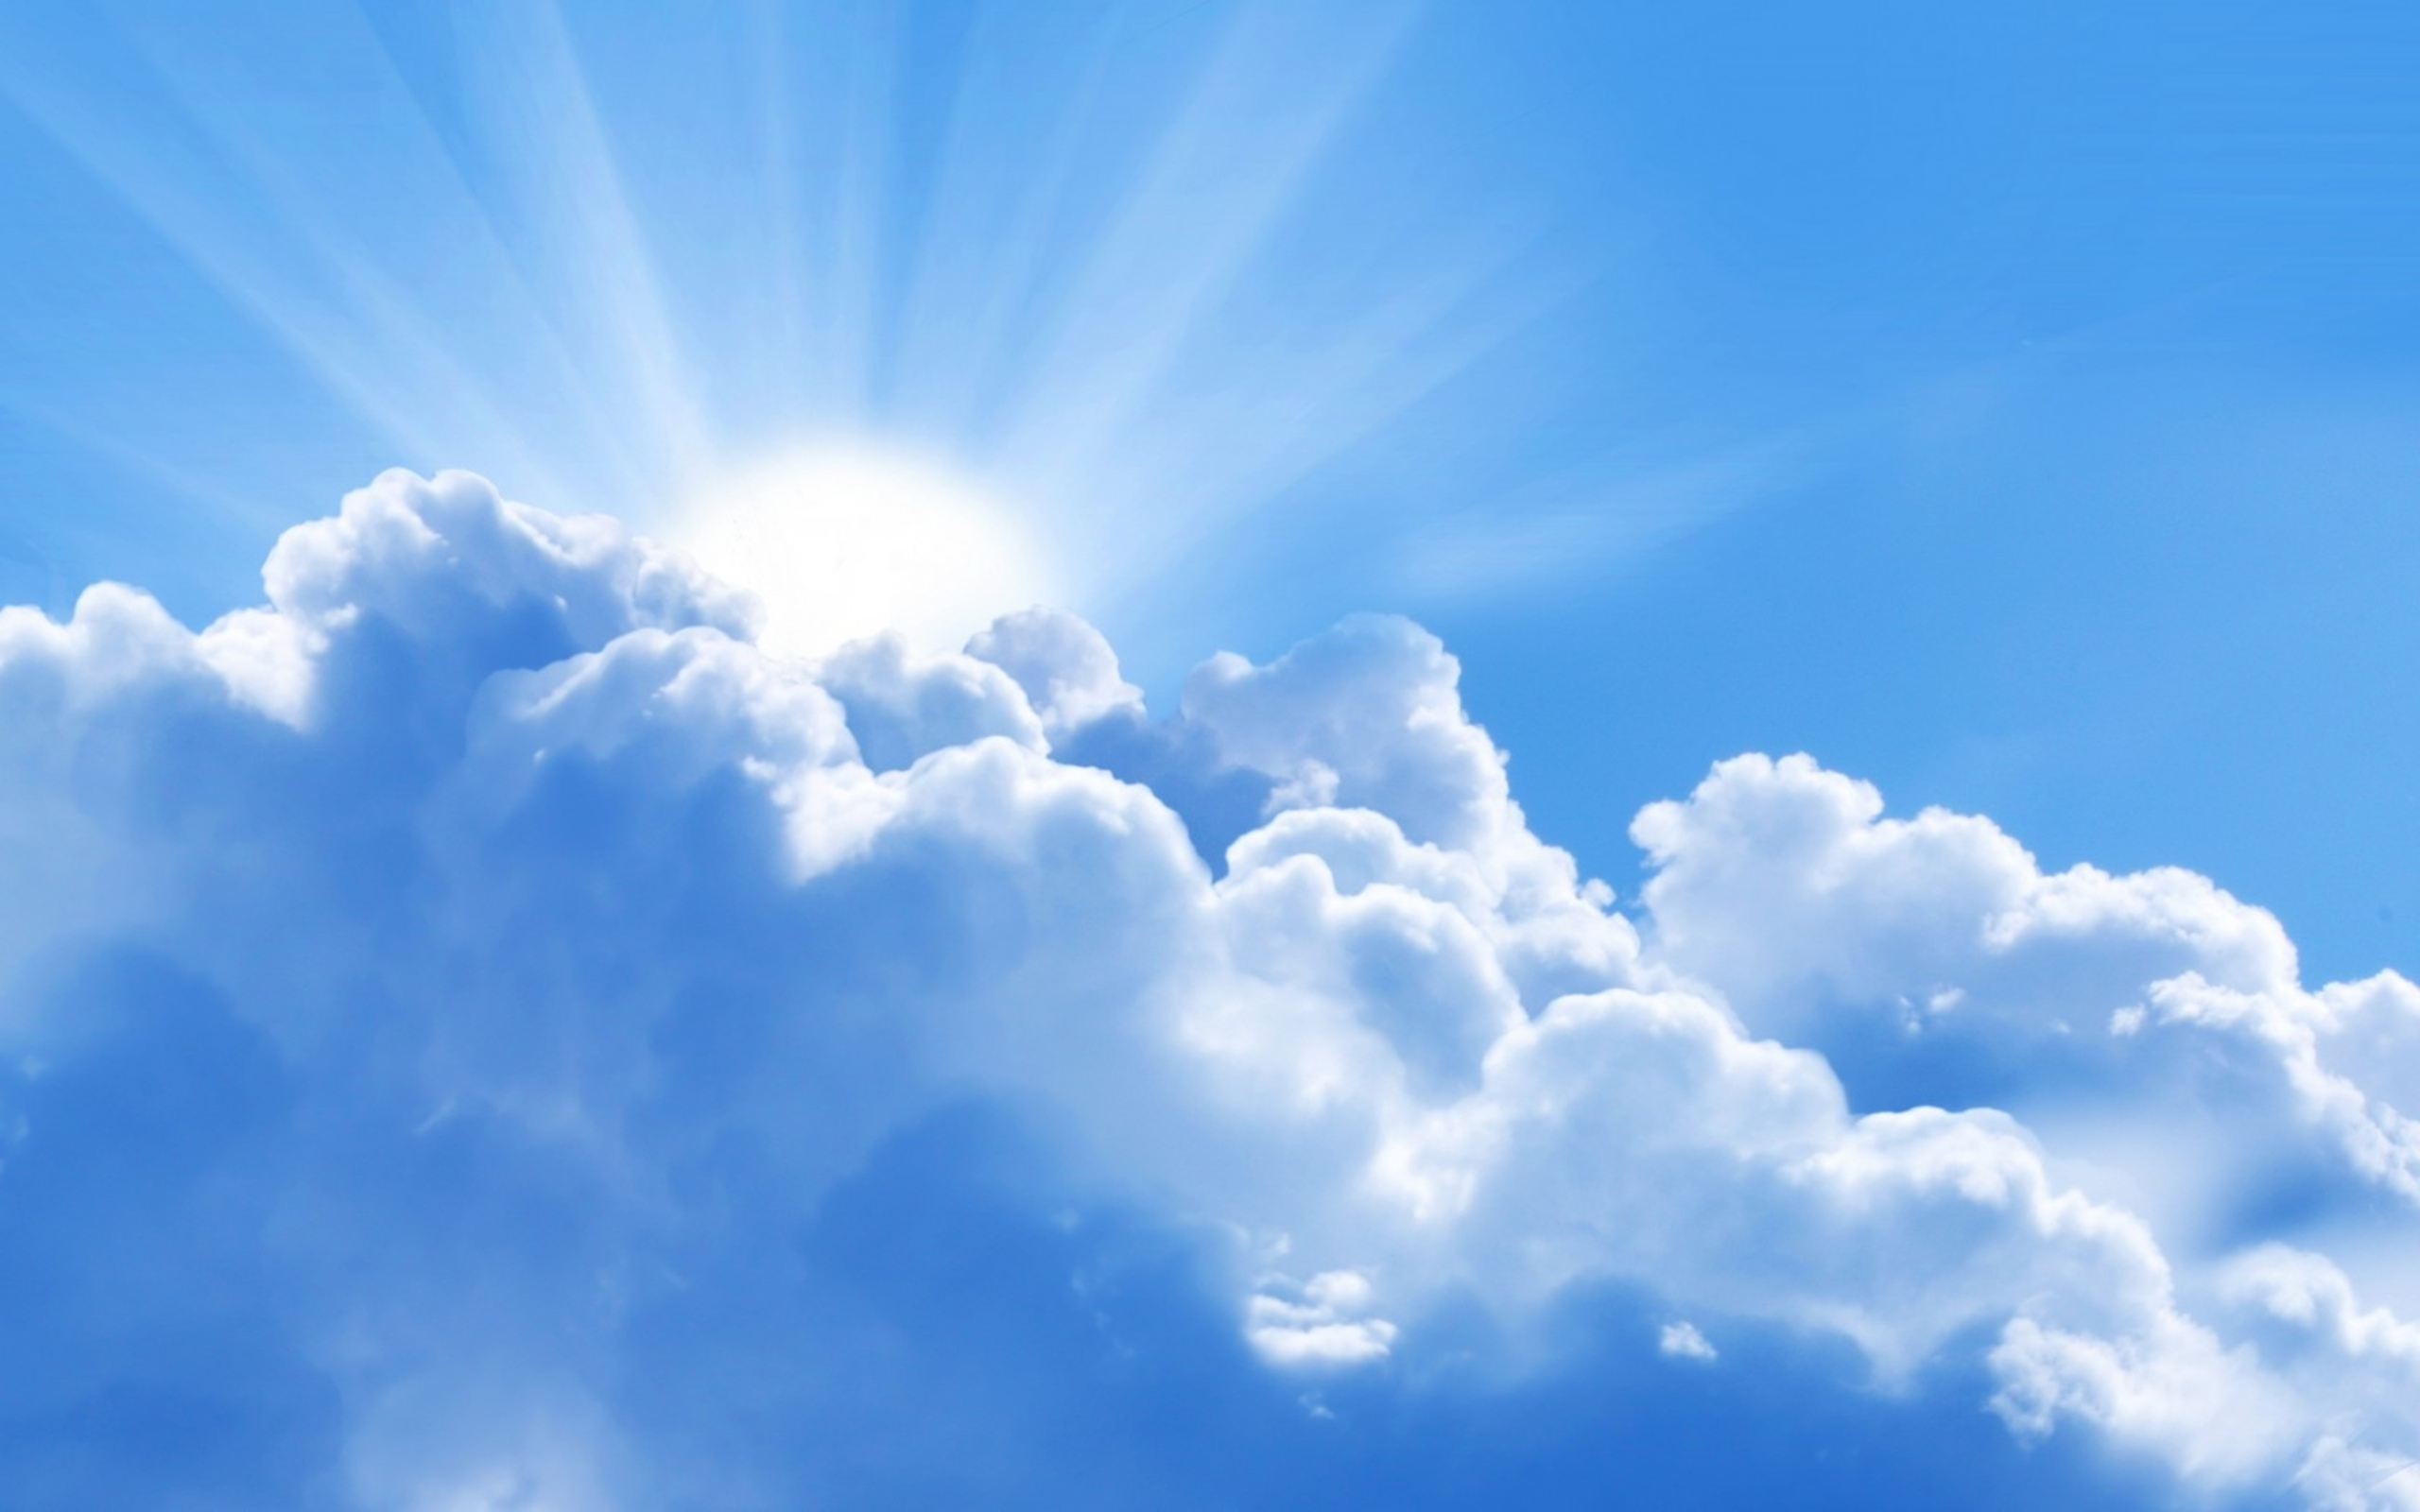 Sun Behind Blue Cloud Hd Wallpapers